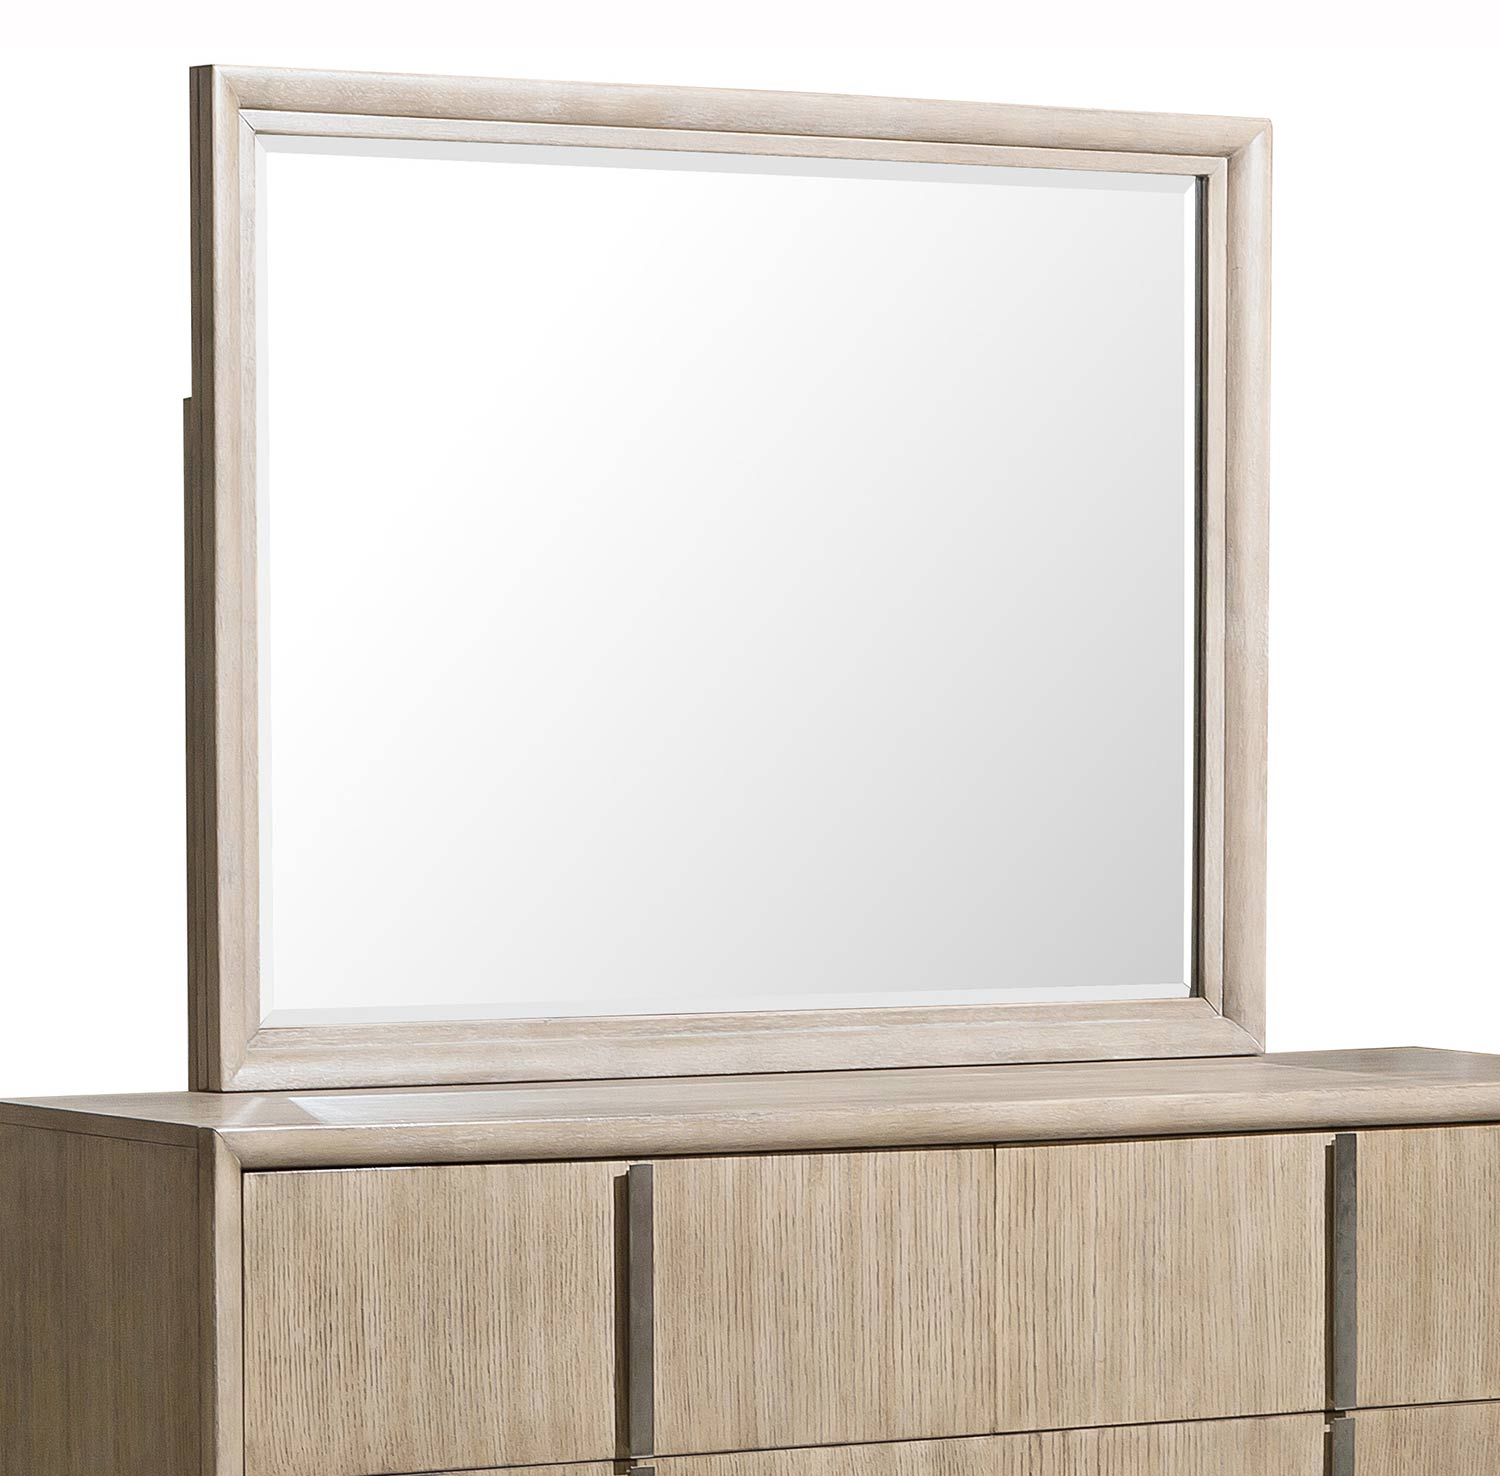 Homelegance McKewen Mirror - Light Gray